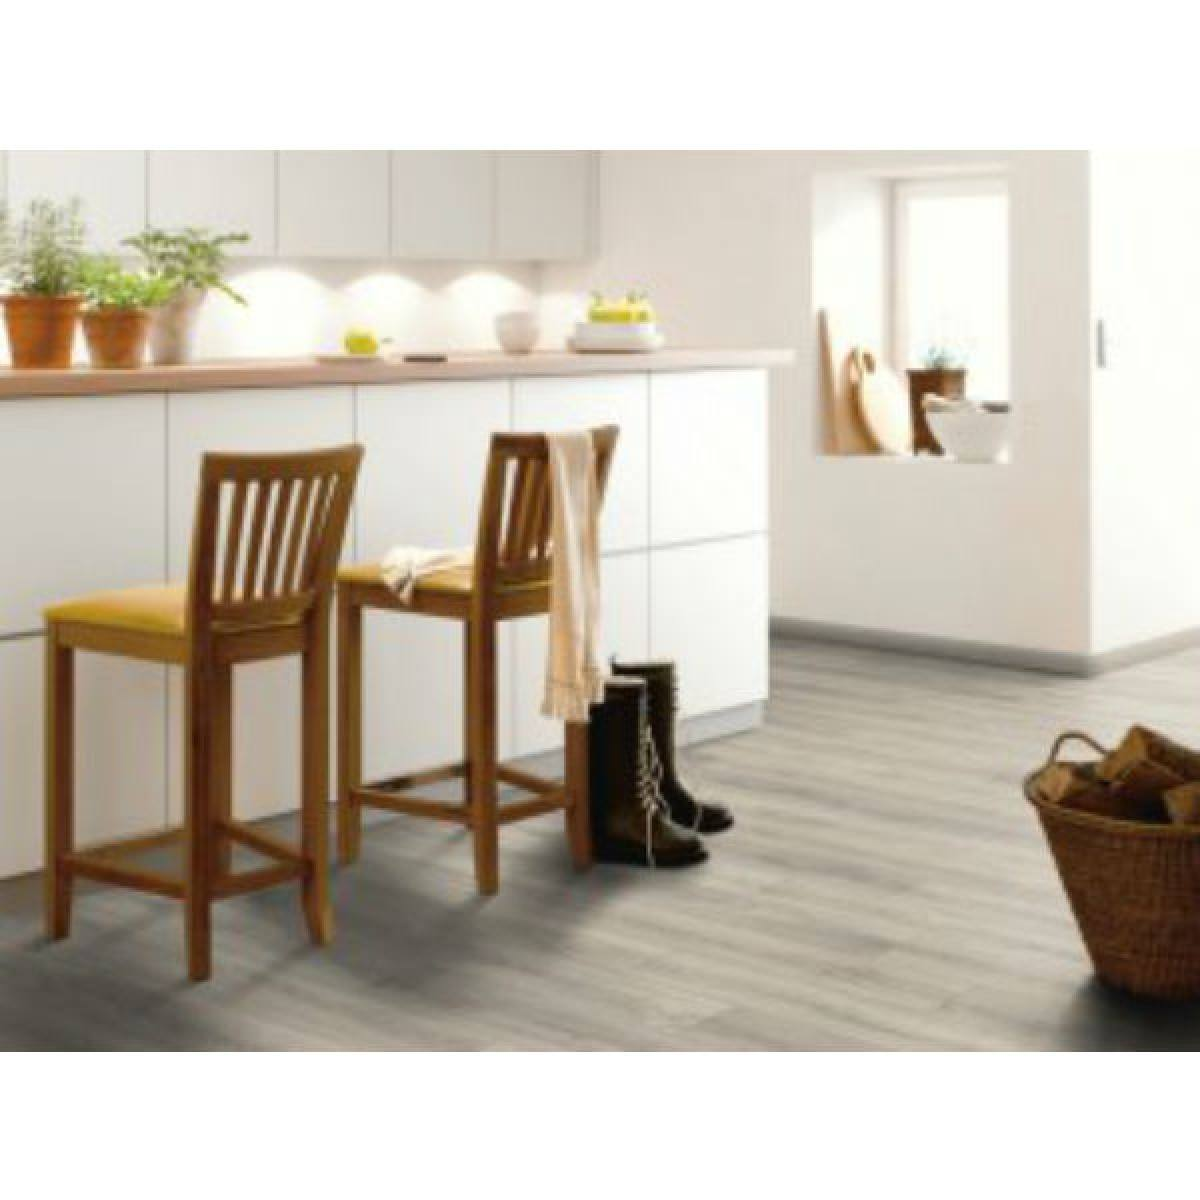 Canadia 11mm Mountain Grey Oak Laminate Flooring